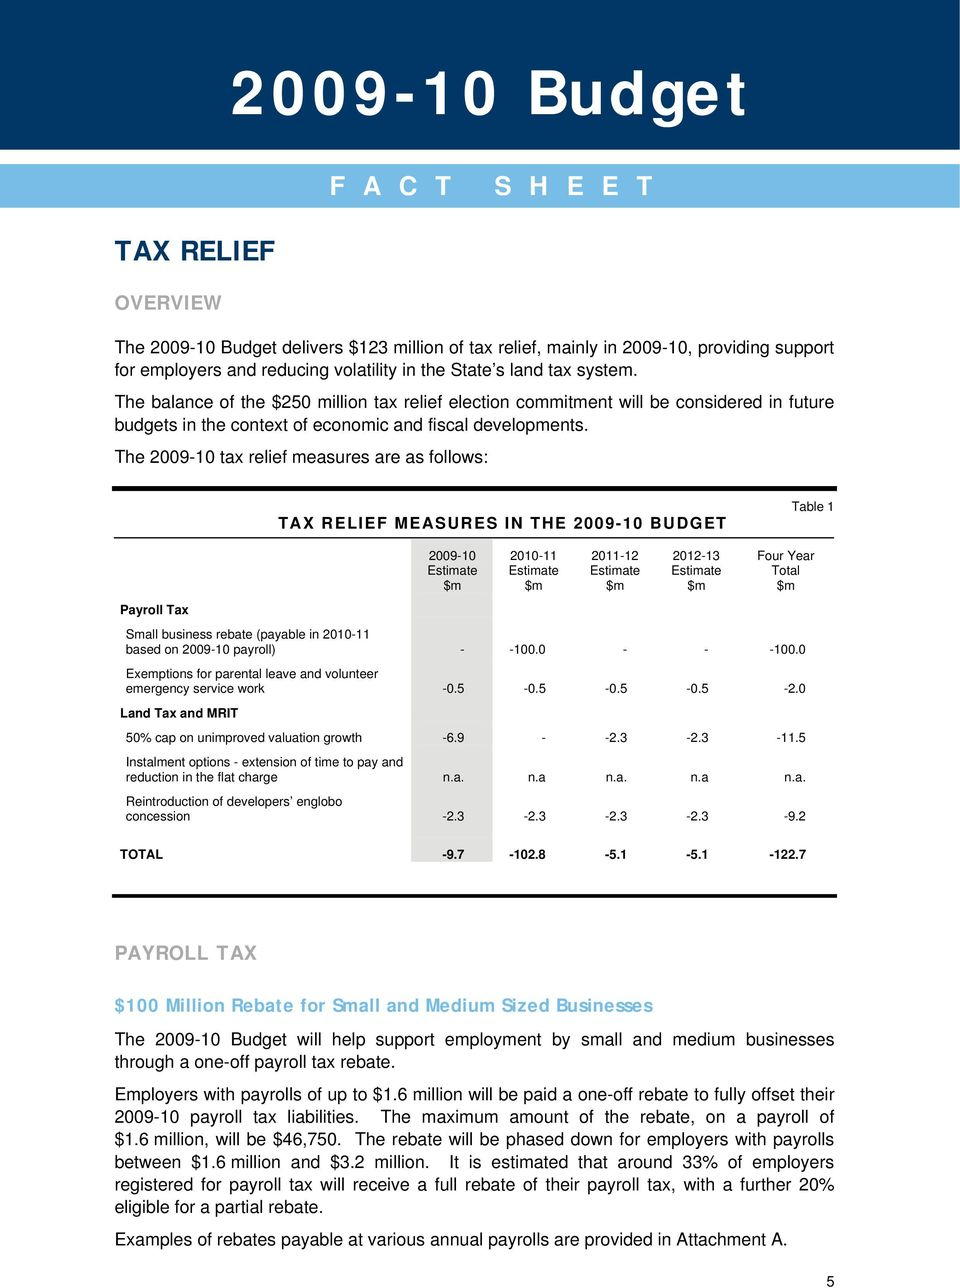 The tax relief measures are as follows: F A C T S H E E T TAX RELIEF MEASURES IN THE BUDGET Table 1 2010-11 2011-12 2012-13 Four Year Total Payroll Tax Small business rebate (payable in 2010-11 based